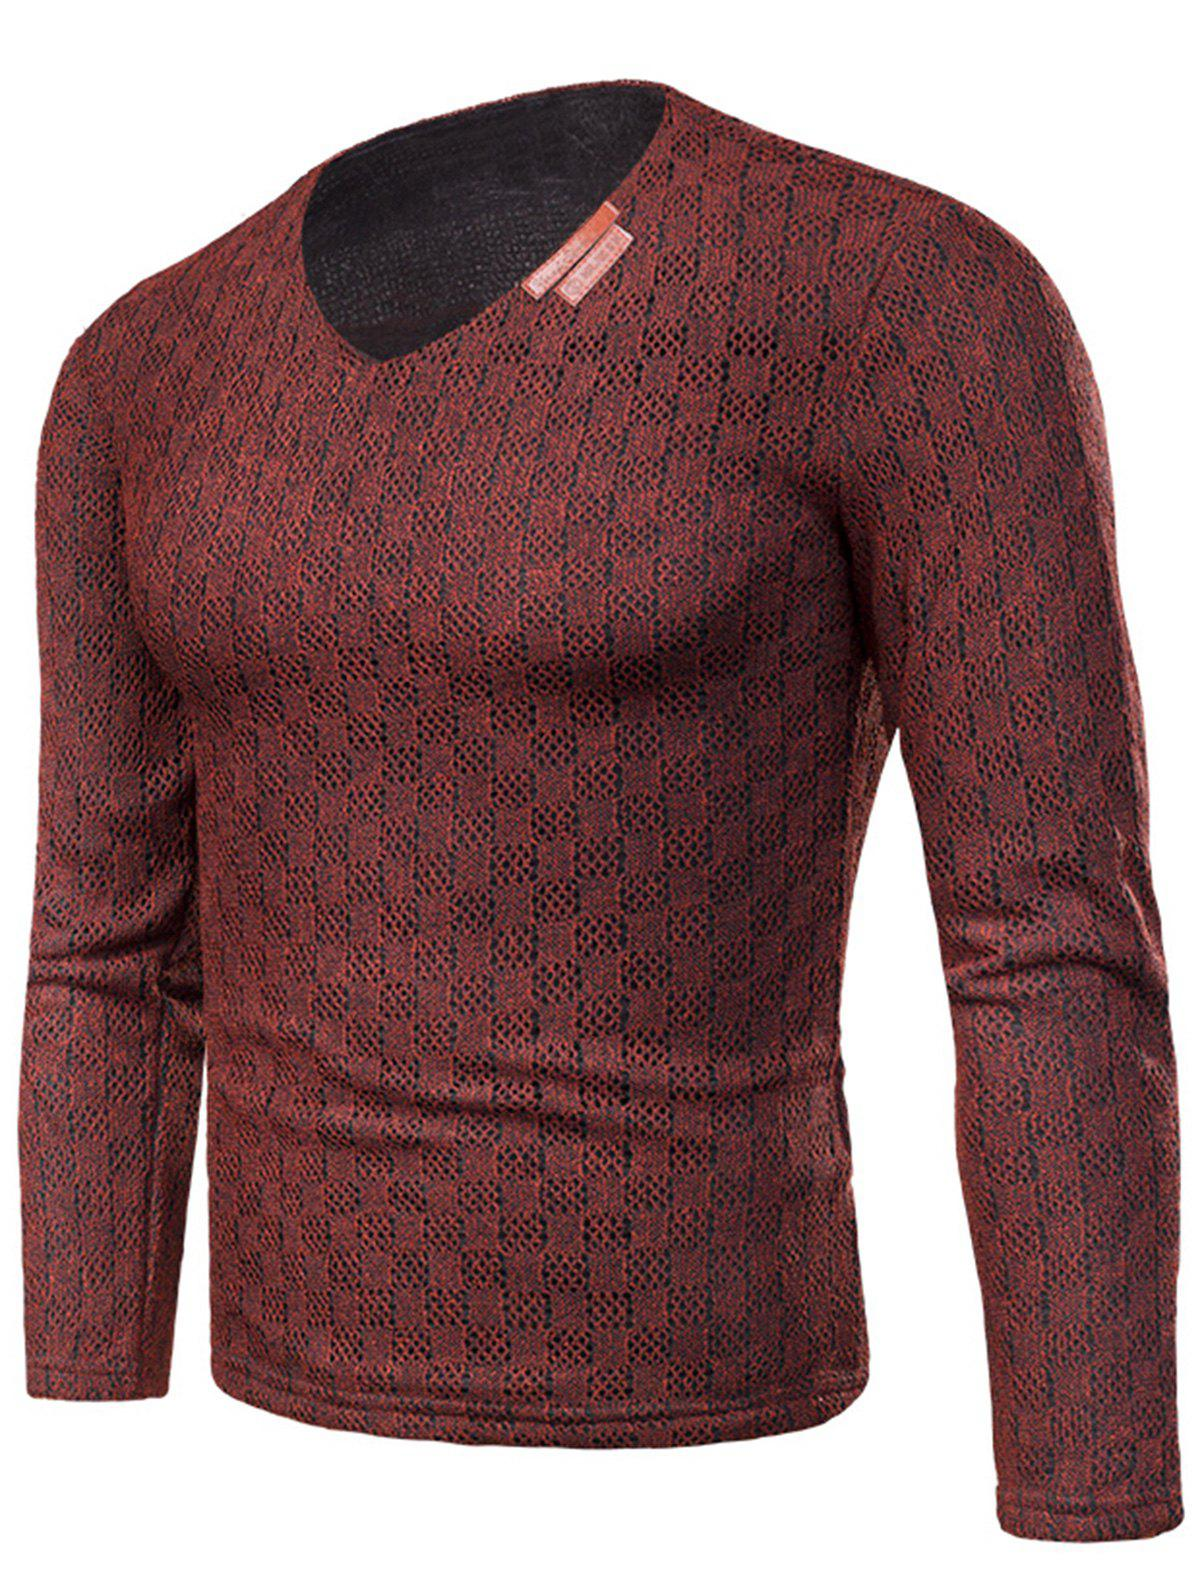 Shop V Neck Applique Knitted Fleece T-shirt